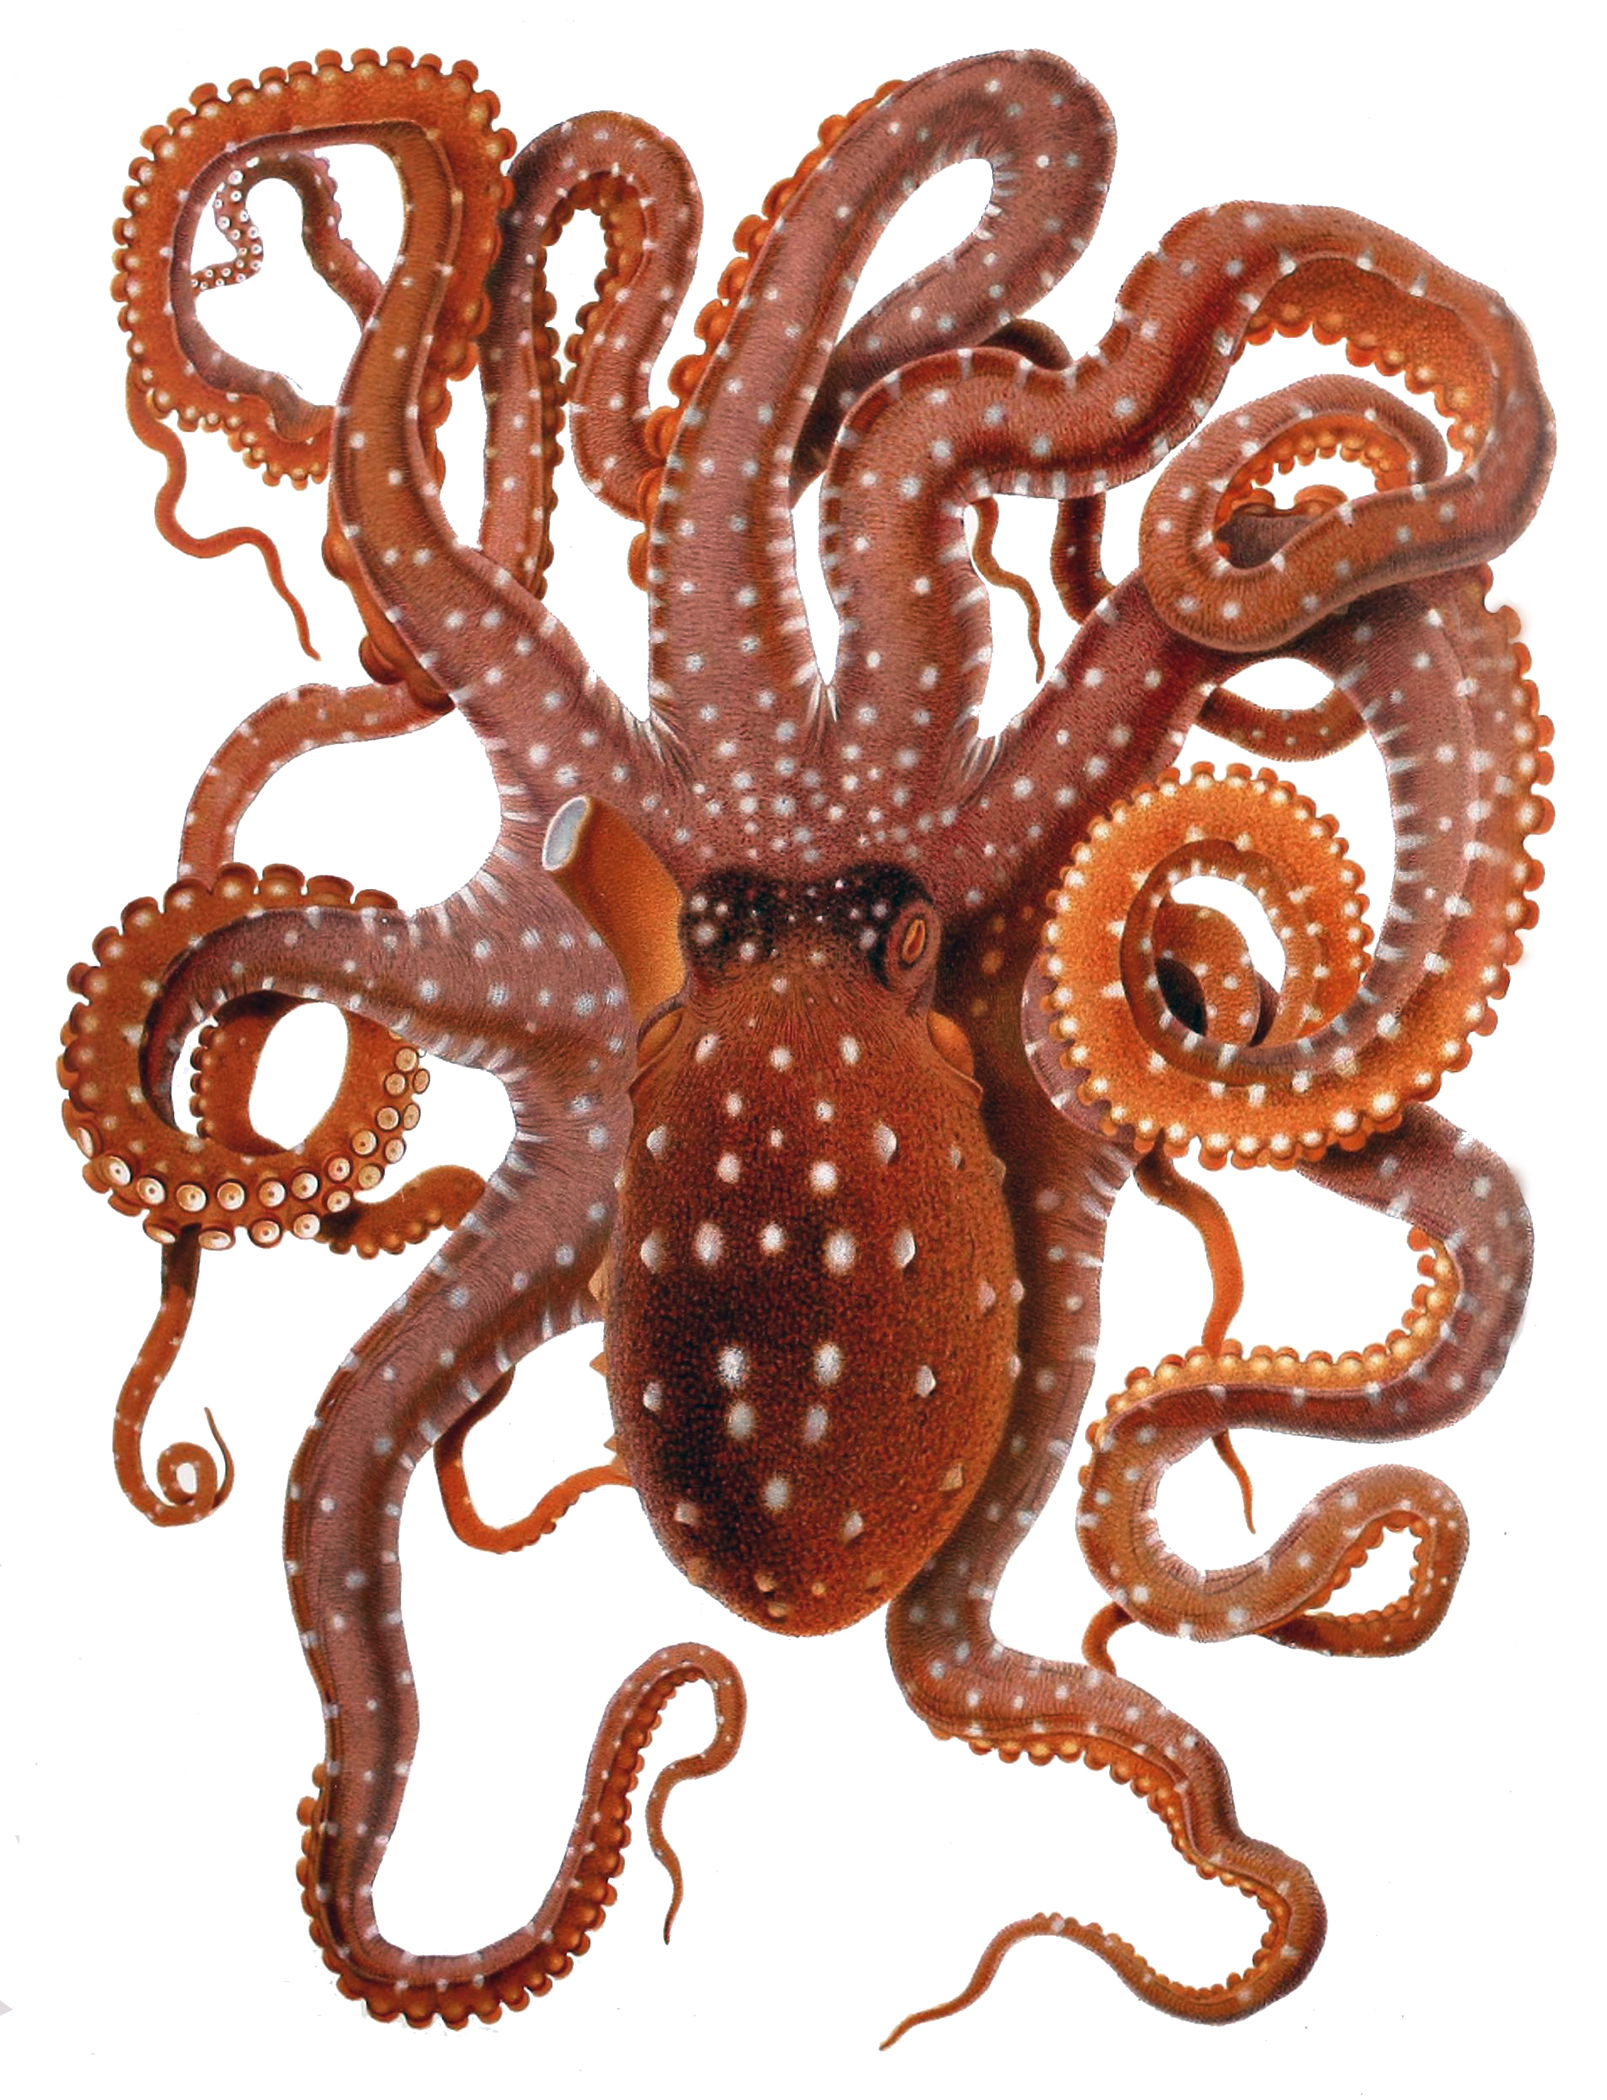 Octopus Macropus Merculianojpg